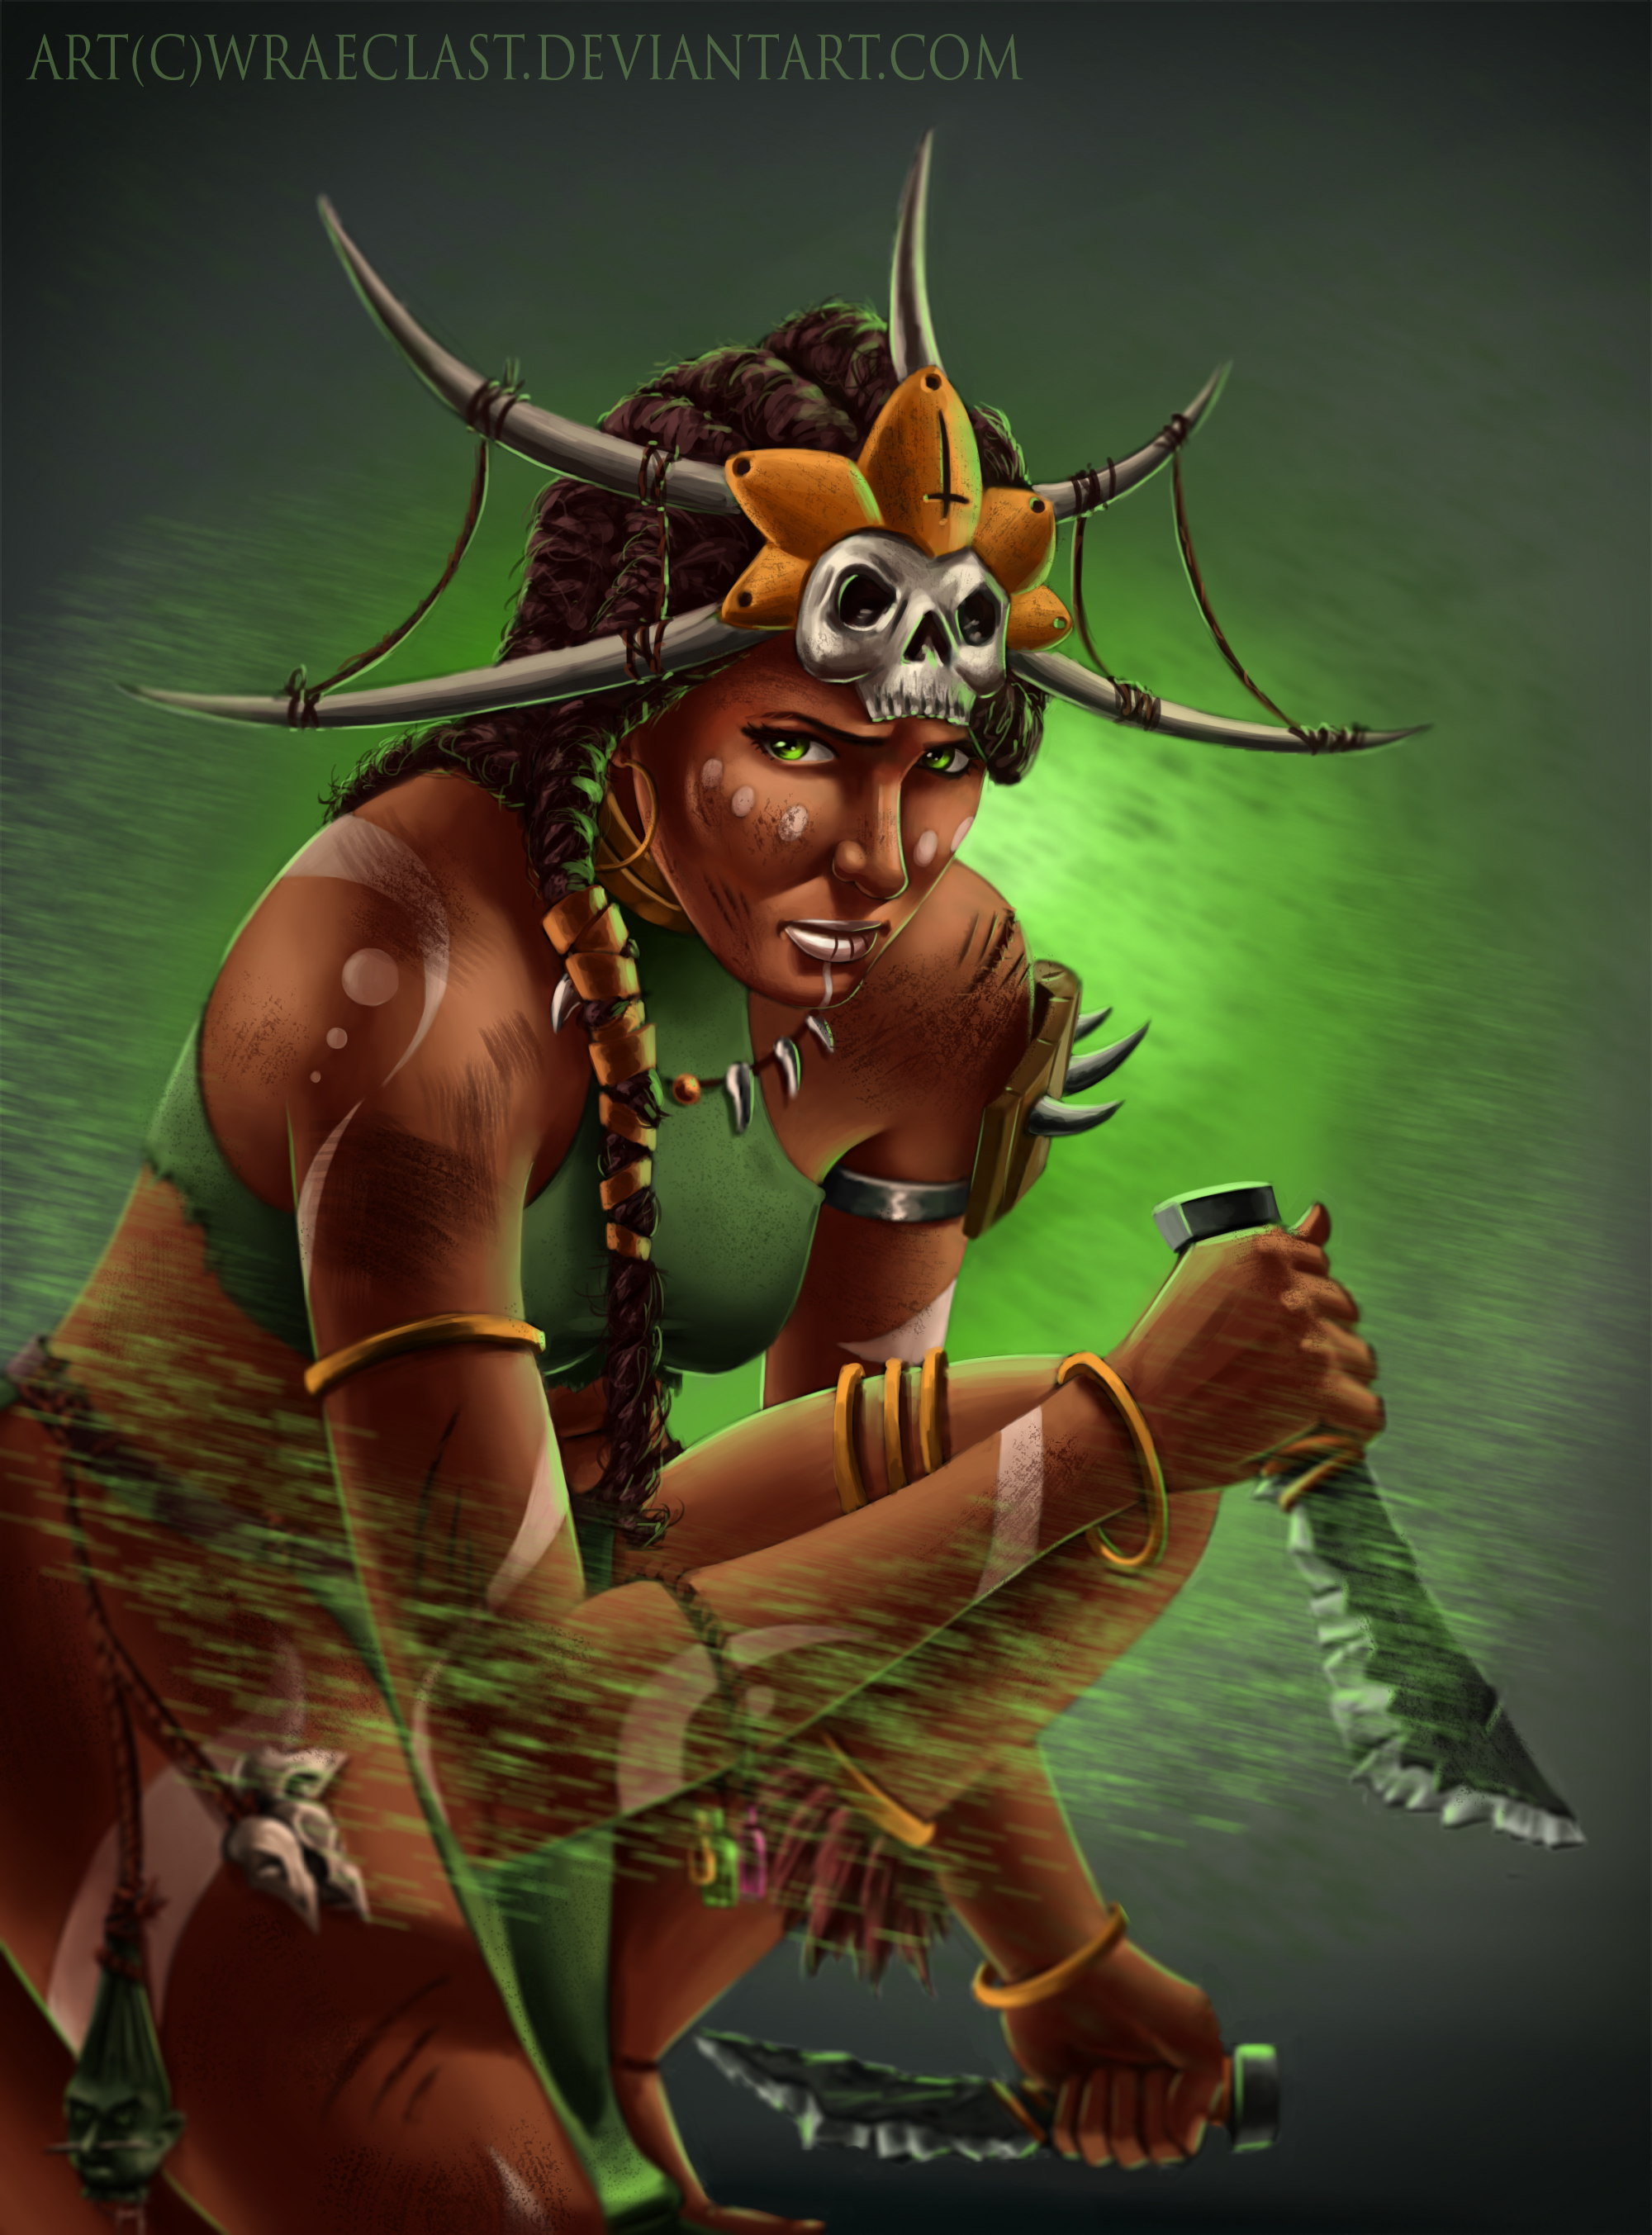 Diablo 3 - Witch Doctor by Wraeclast on DeviantArt